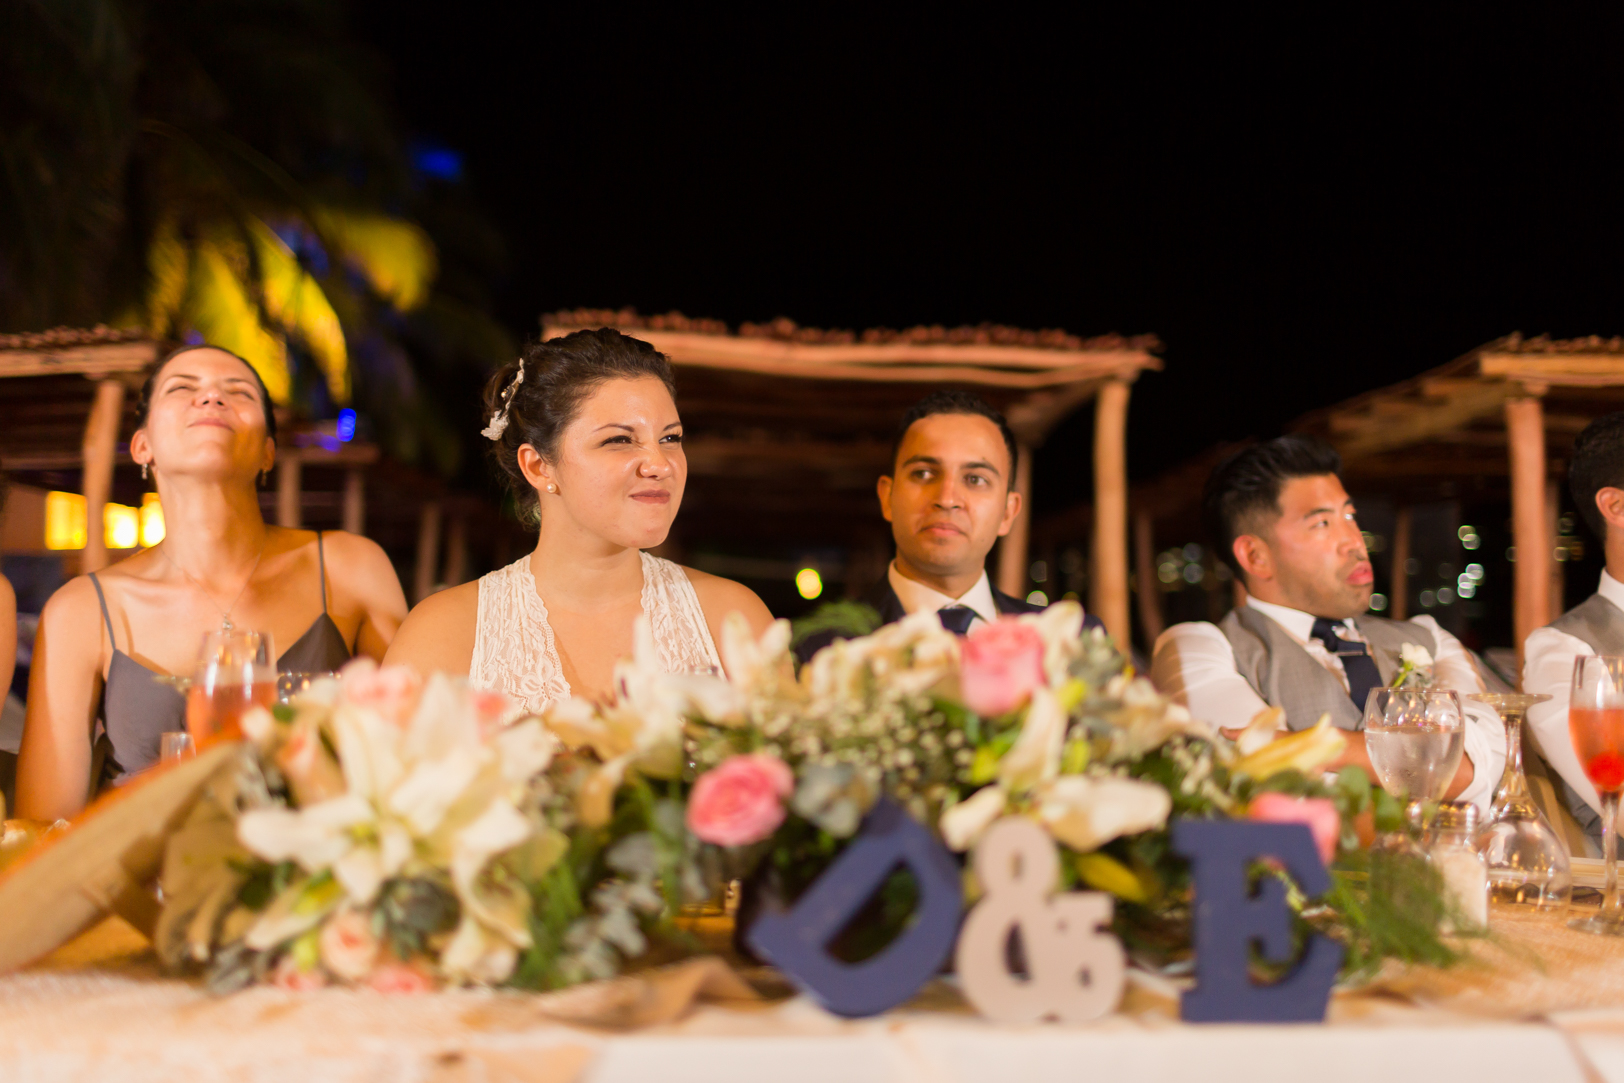 Funny faces during the speeches at Sunscape Dorado Pacifico Ixtapa destination wedding